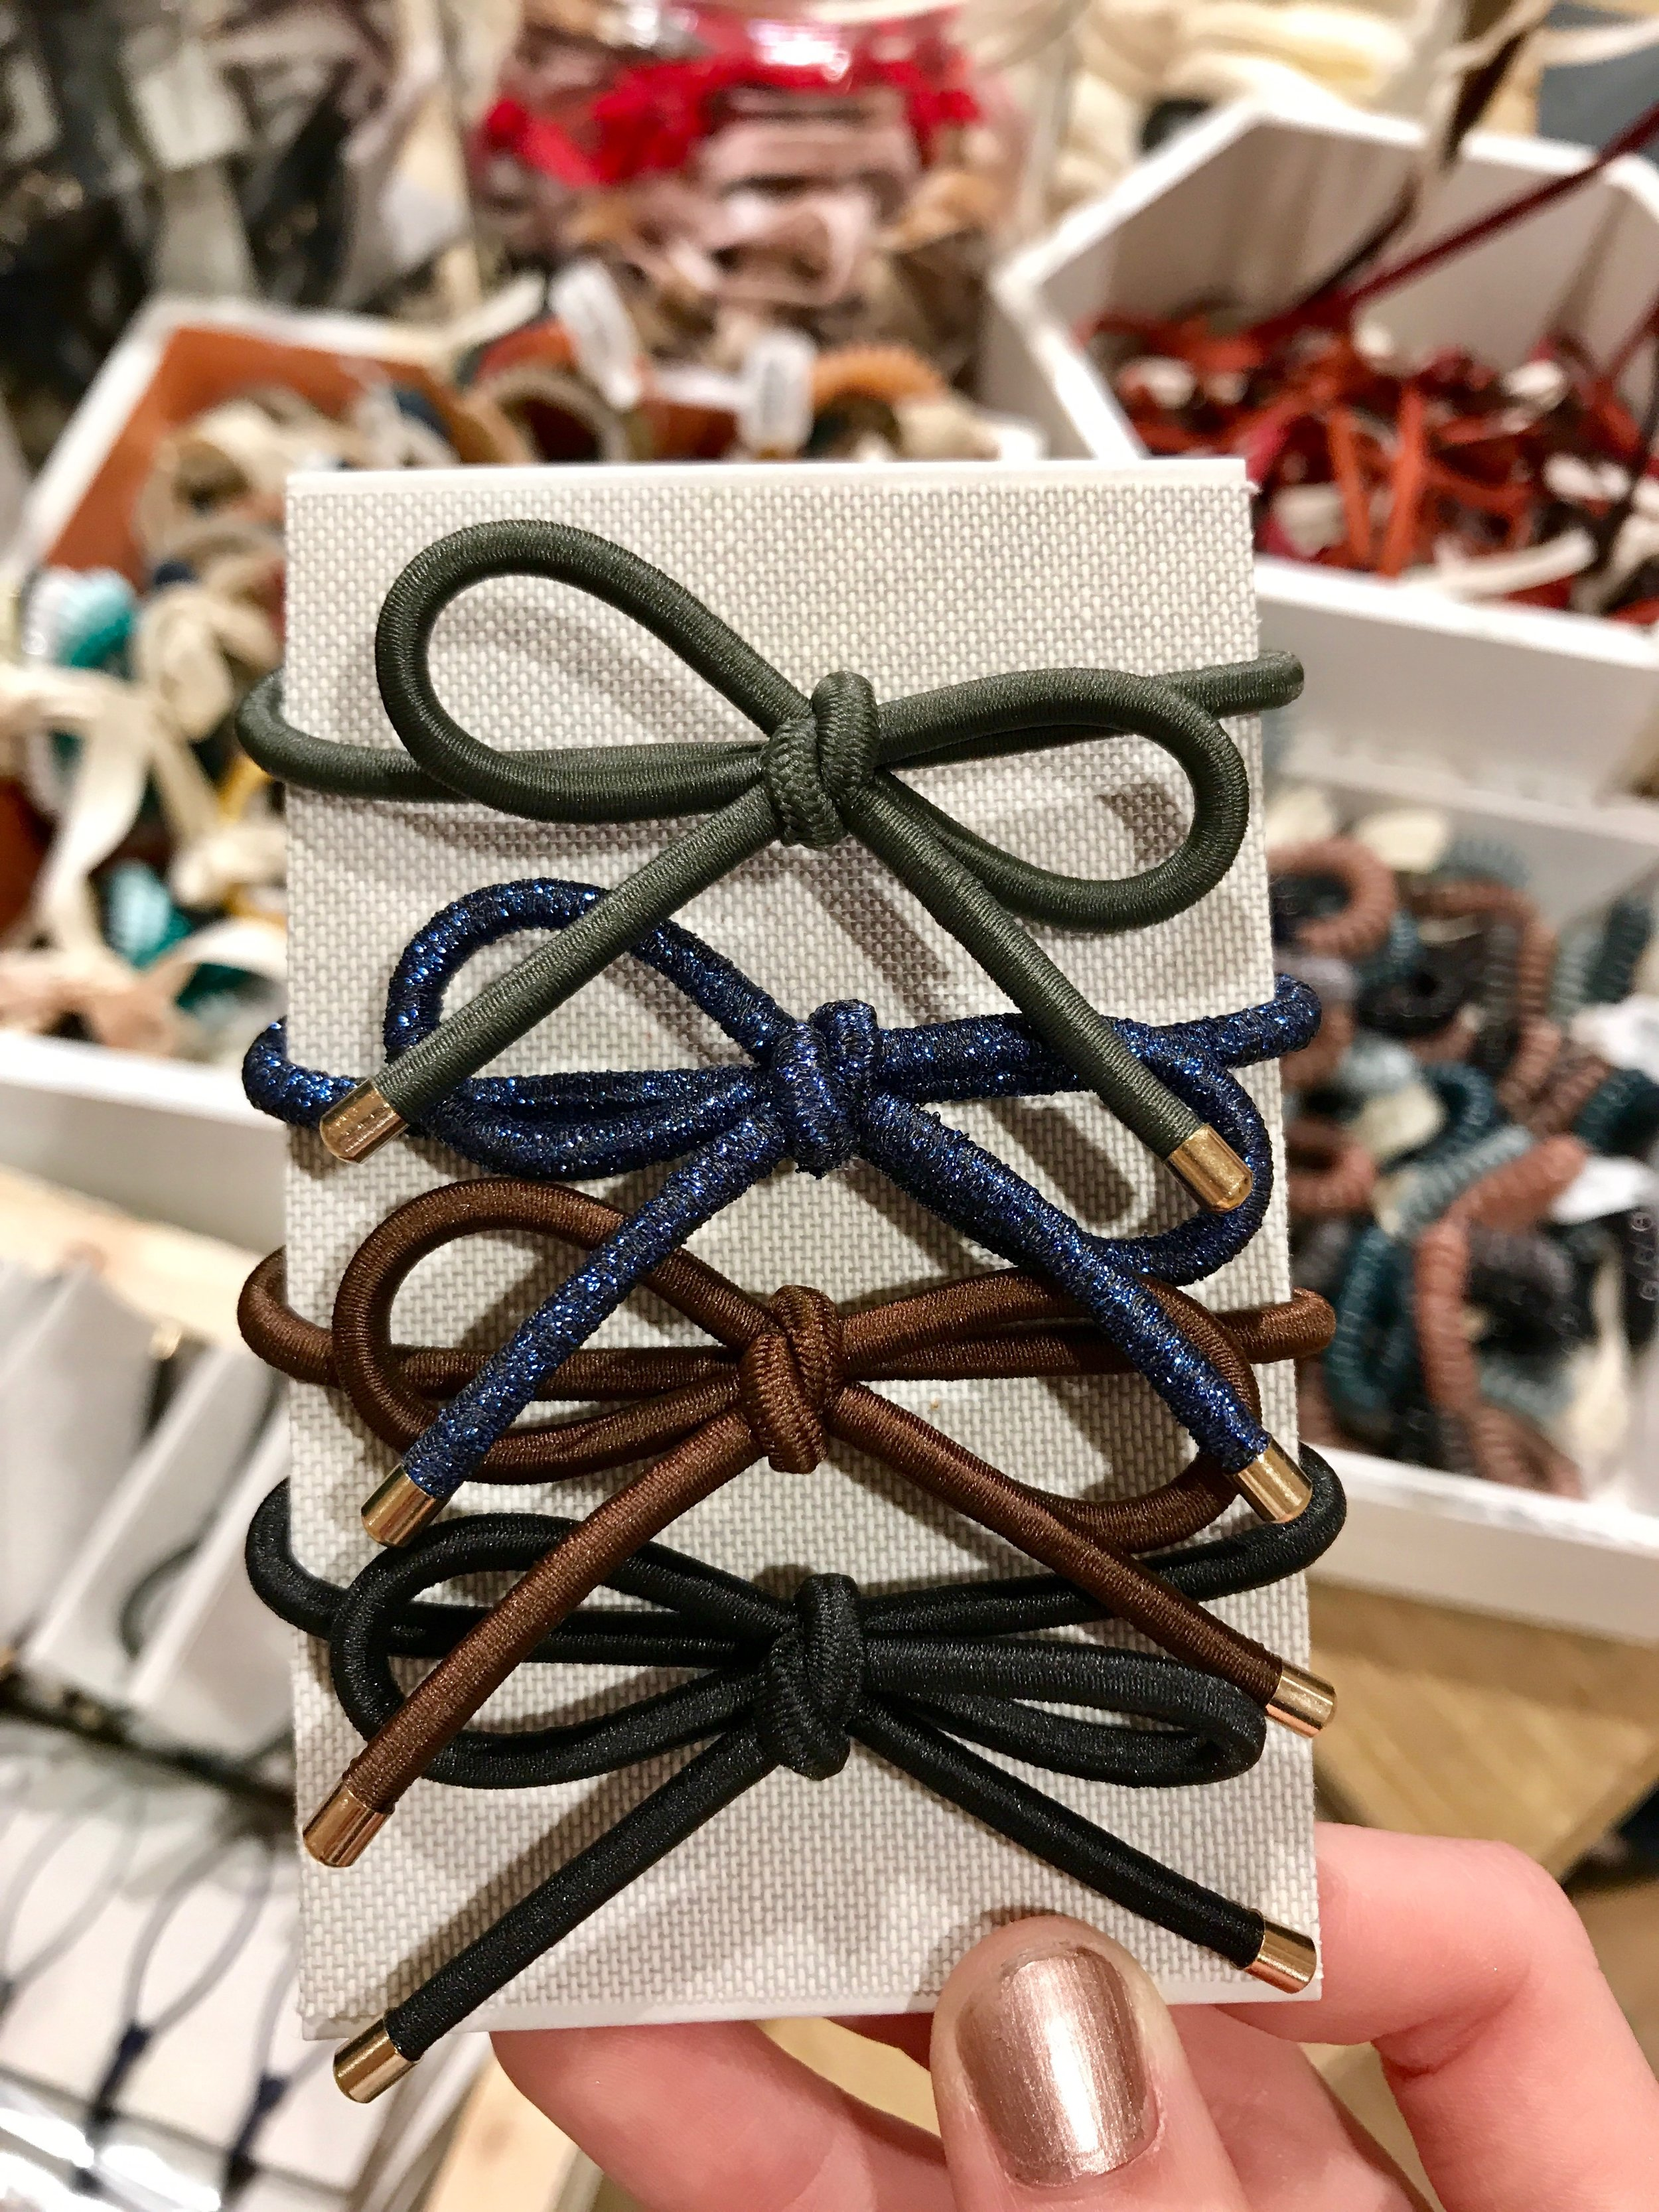 Hair Ties - $12 - Store: AnthropologyWhen I say these in Anthropology I thought they were so cute and I wanted some. Hair ties are a pretty common item that most girls use, but it is always fun to have some pretty ones that don't look weird when you are just wearing them on your wrist.